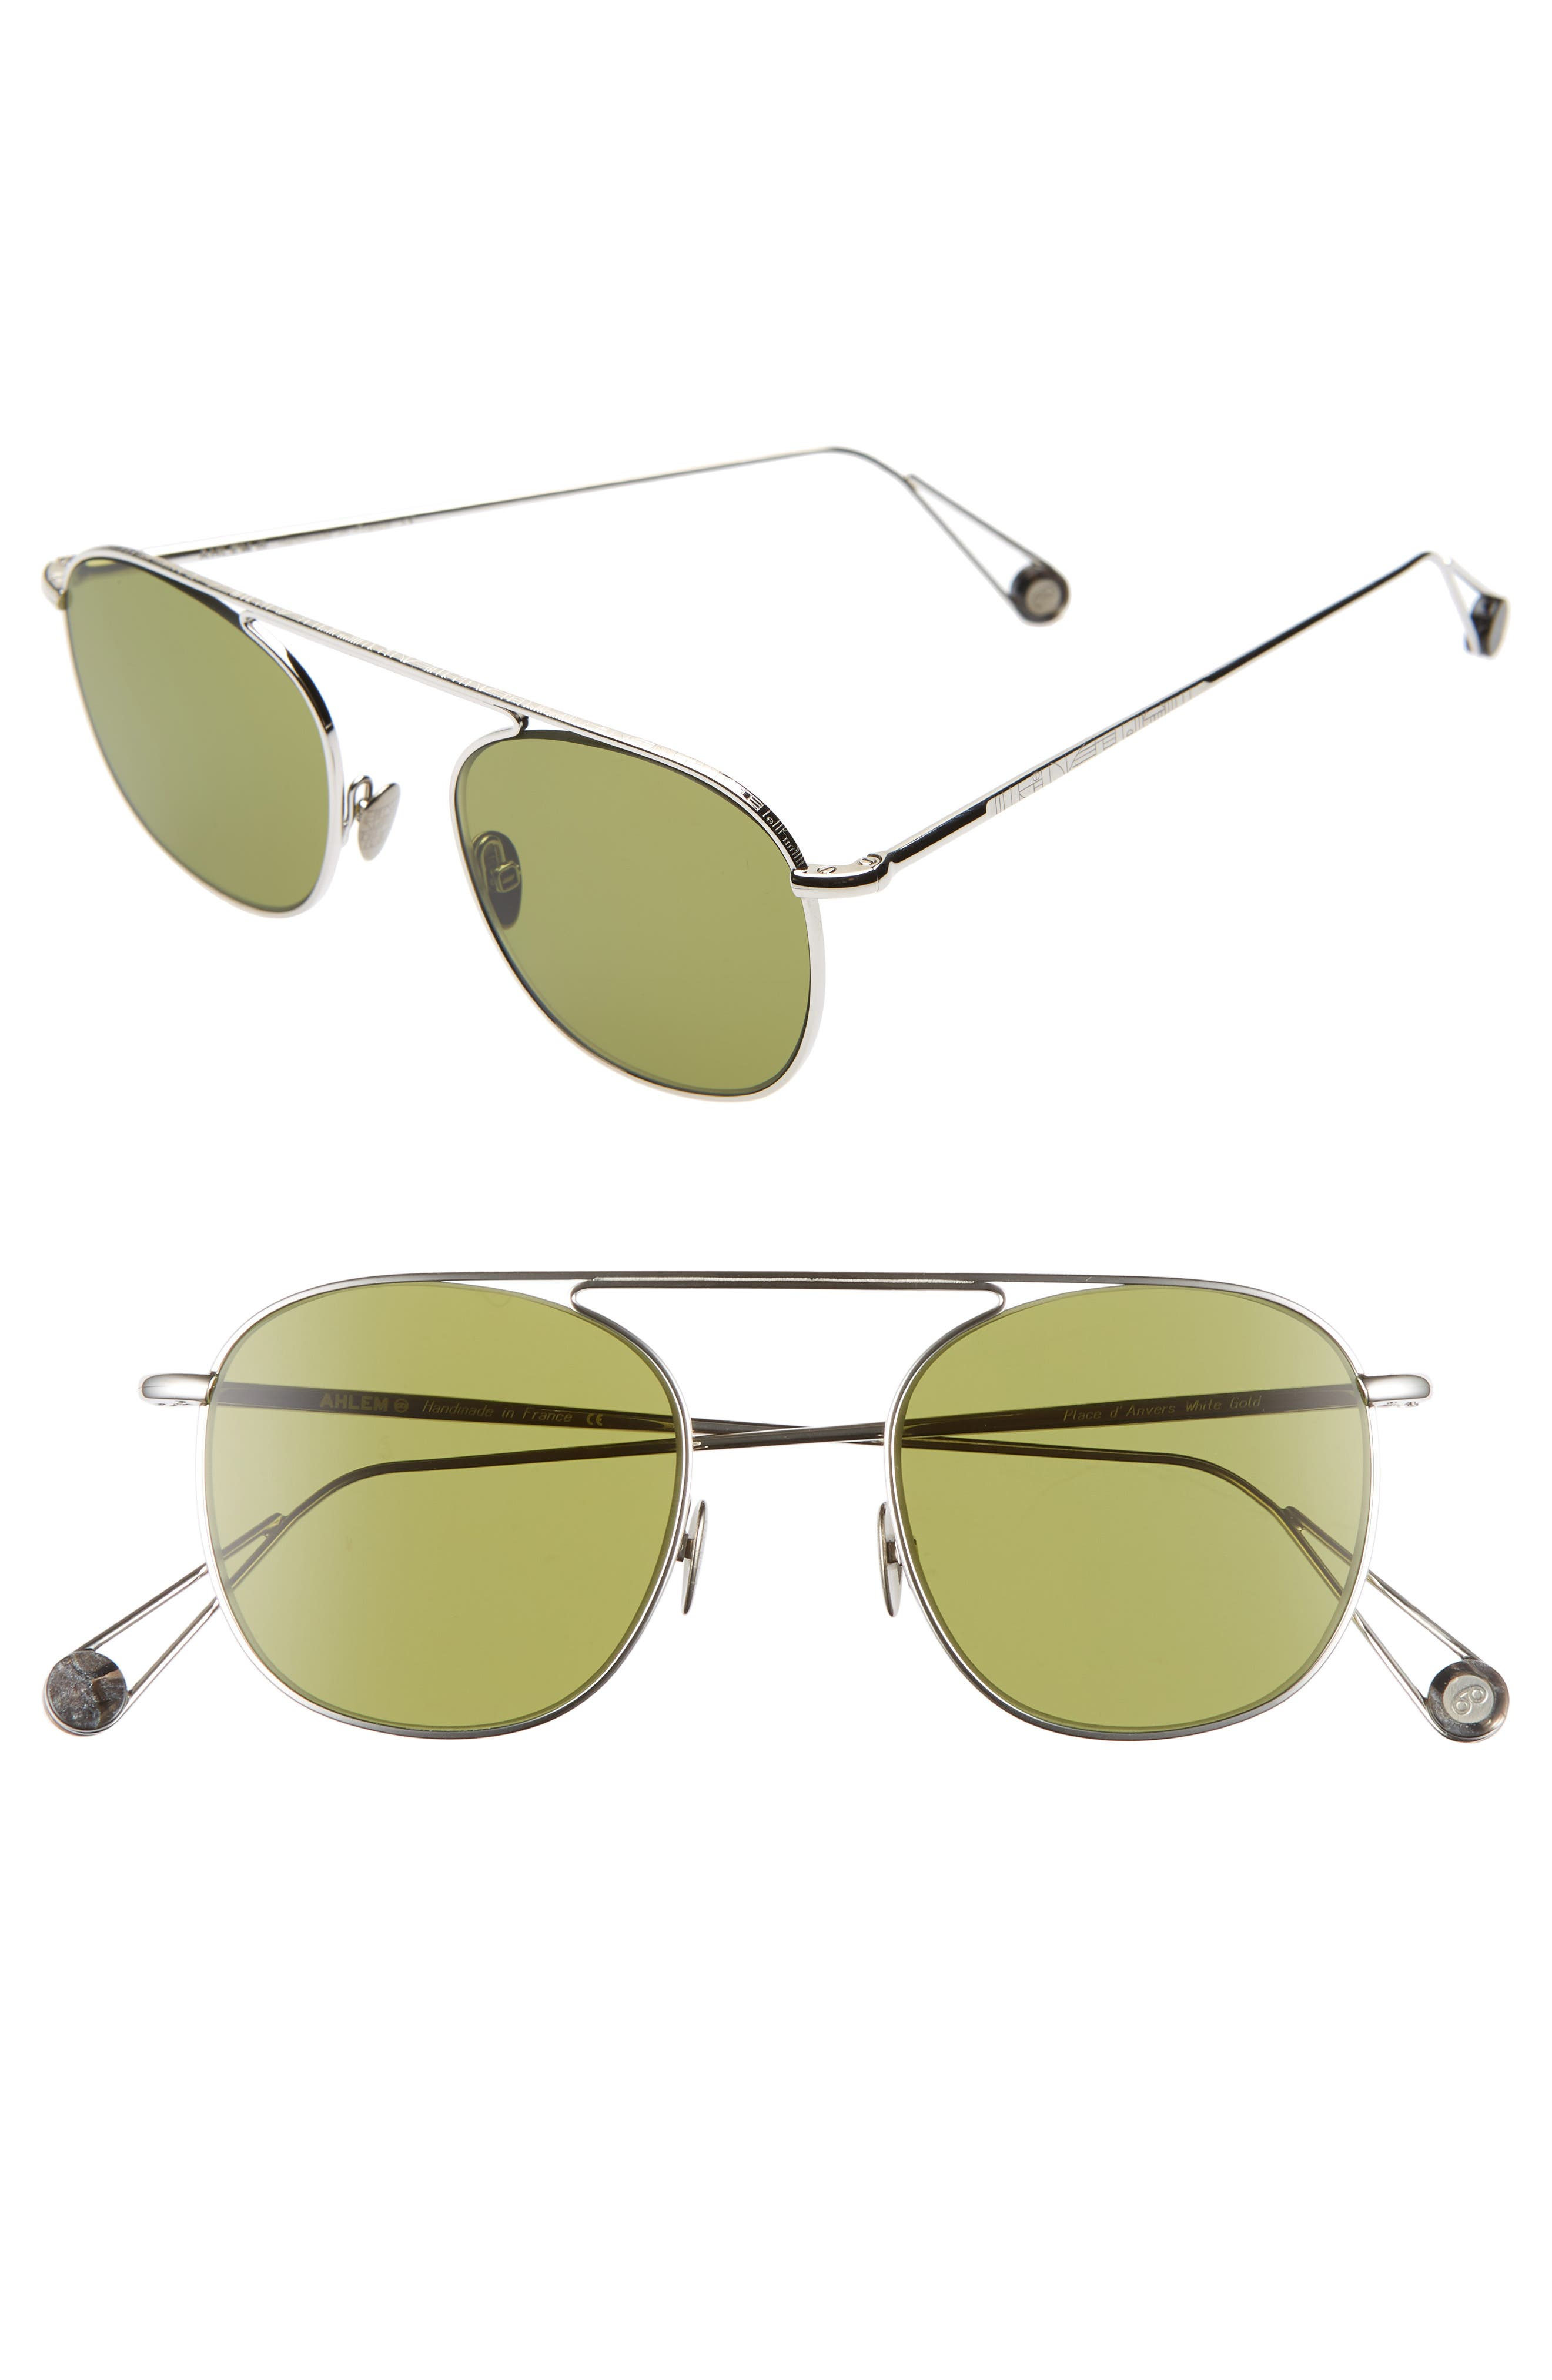 AHLEM D'Anvers 49Mm Aviator Sunglasses in White Gold